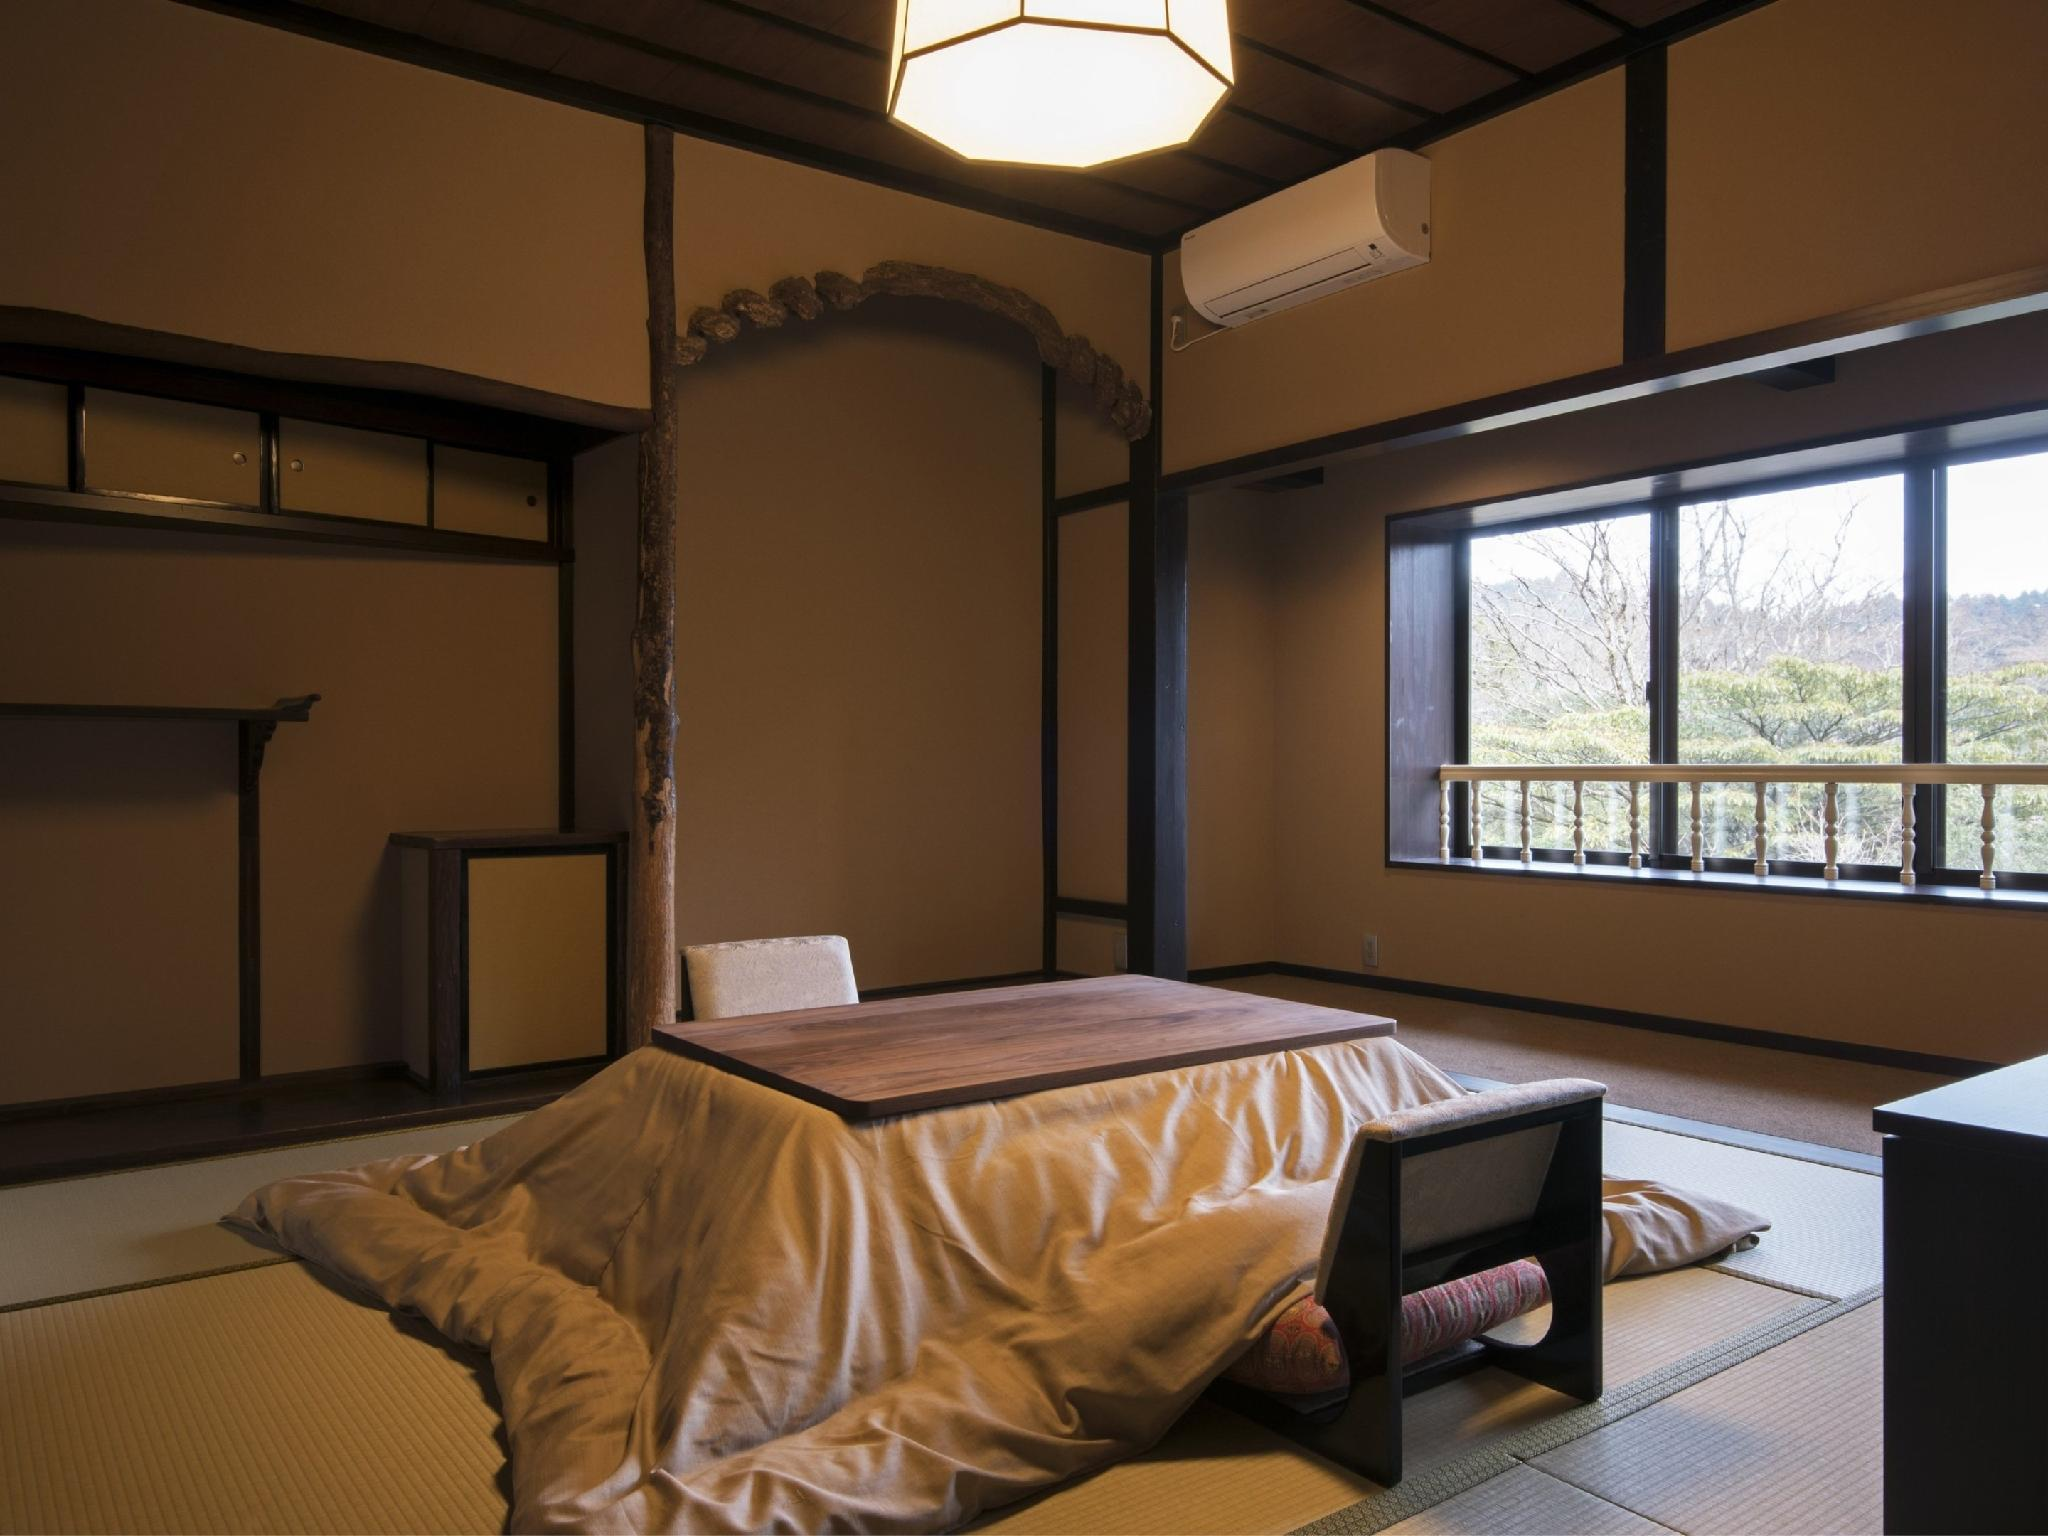 다다미 침대 객실(KAKUMEIKAN) *객실내 욕실 없음 (Japanese/Western-style Room (Kakumeikan Wing) *No bath in room)